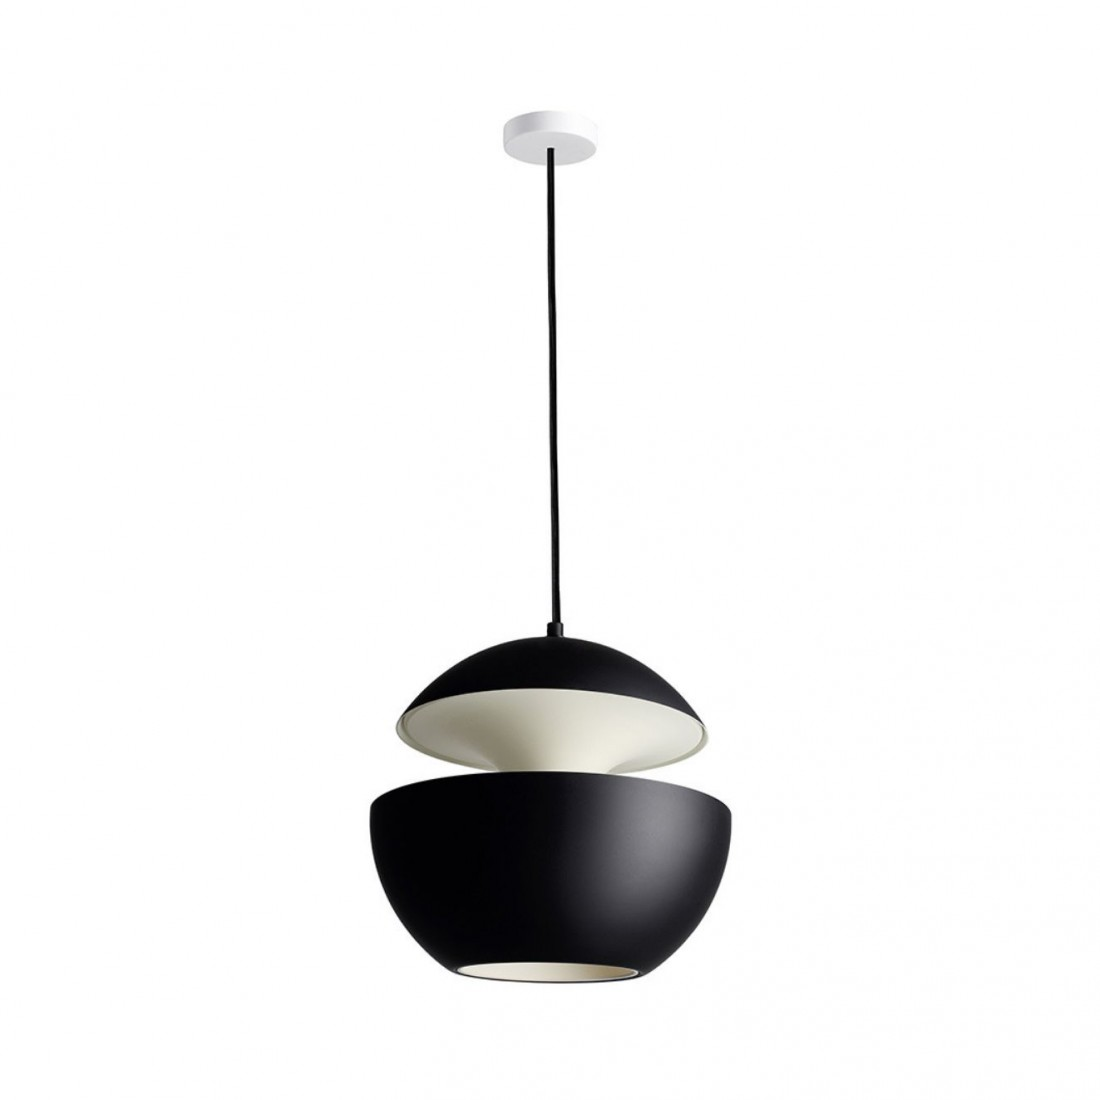 Suspension Here Comes The Sun DCW éditions